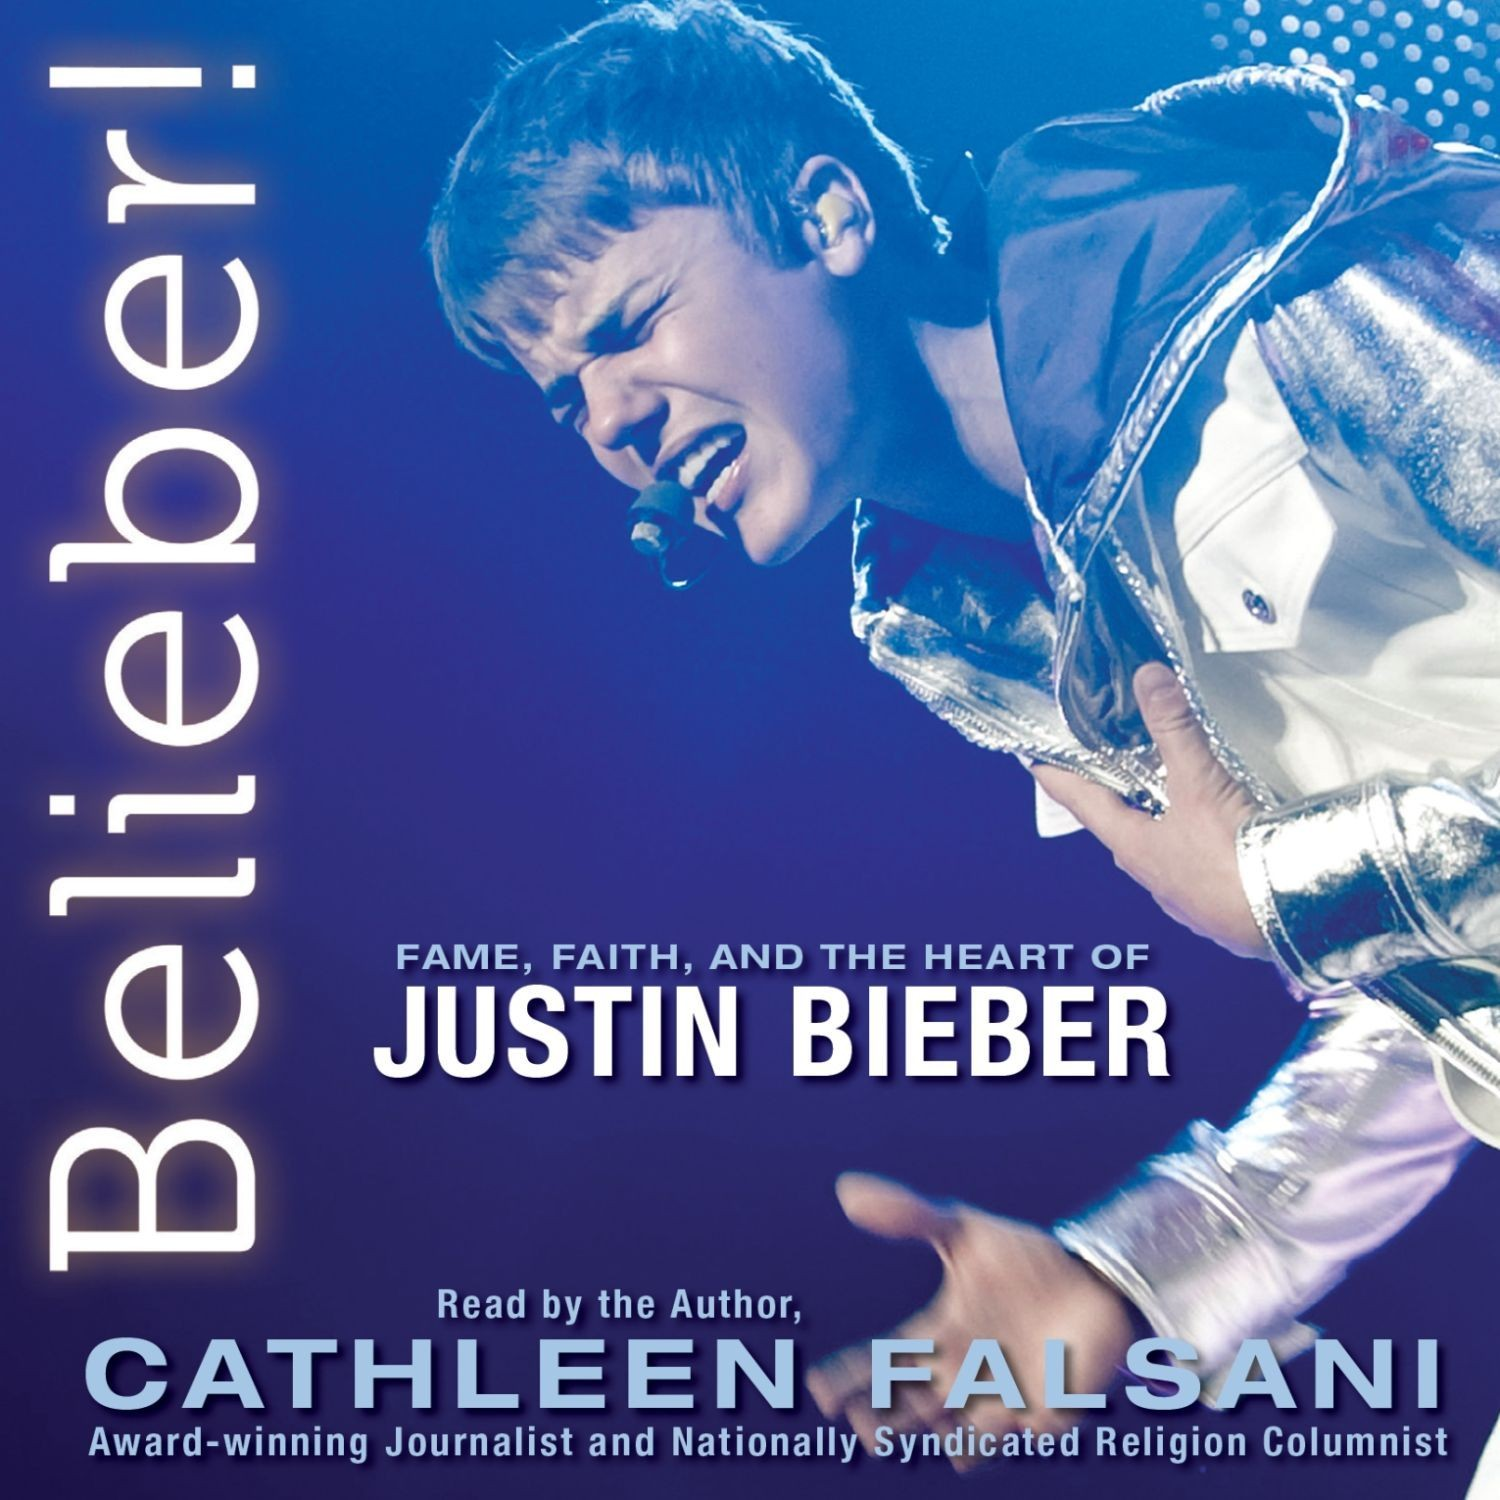 Printable Belieber!: Fame, Faith, and the Heart of Justin Bieber Audiobook Cover Art